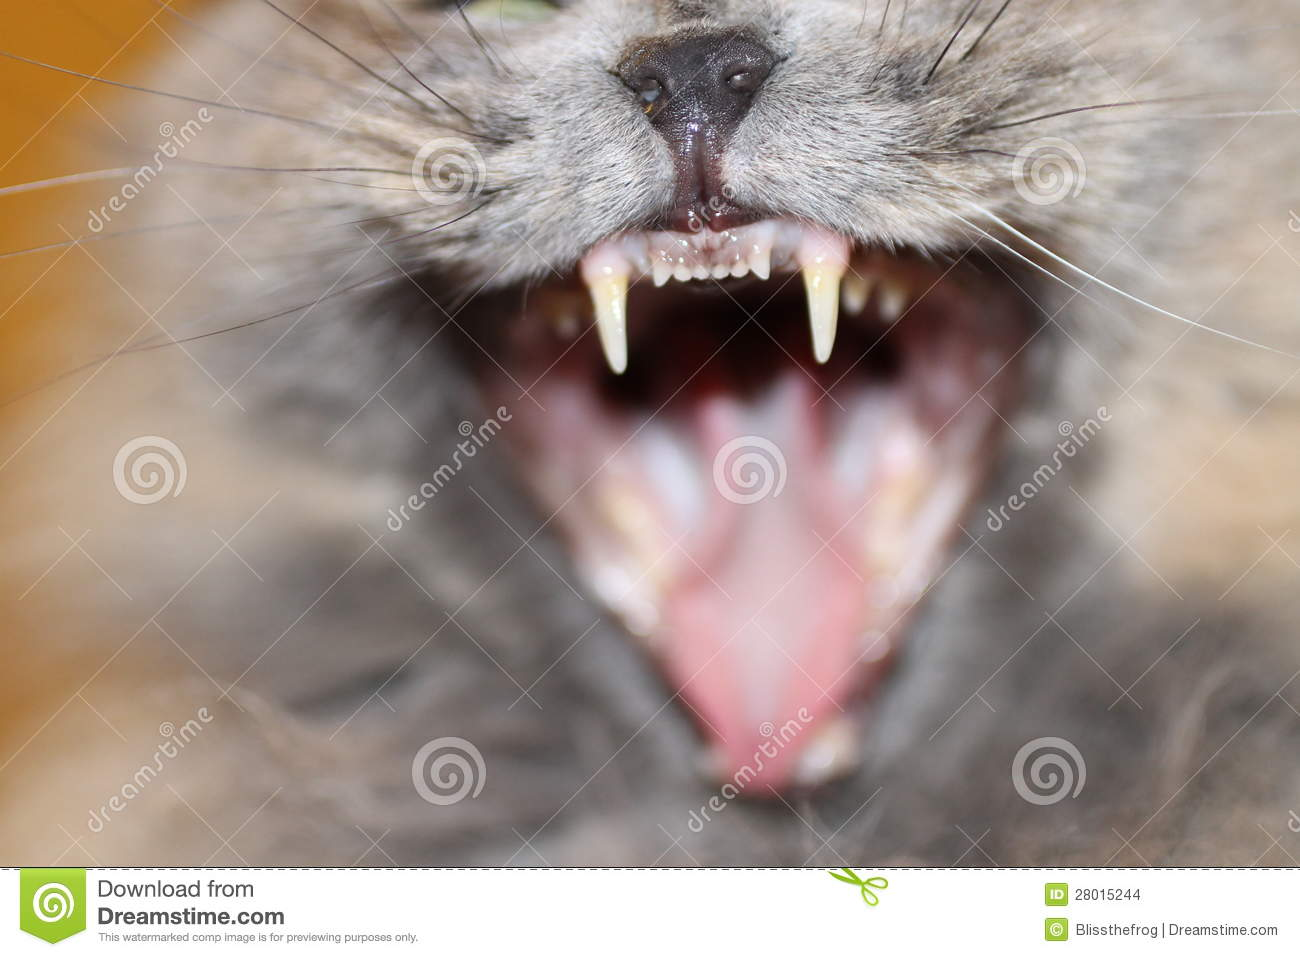 Cat Fangs Stock Images - Image: 28015244